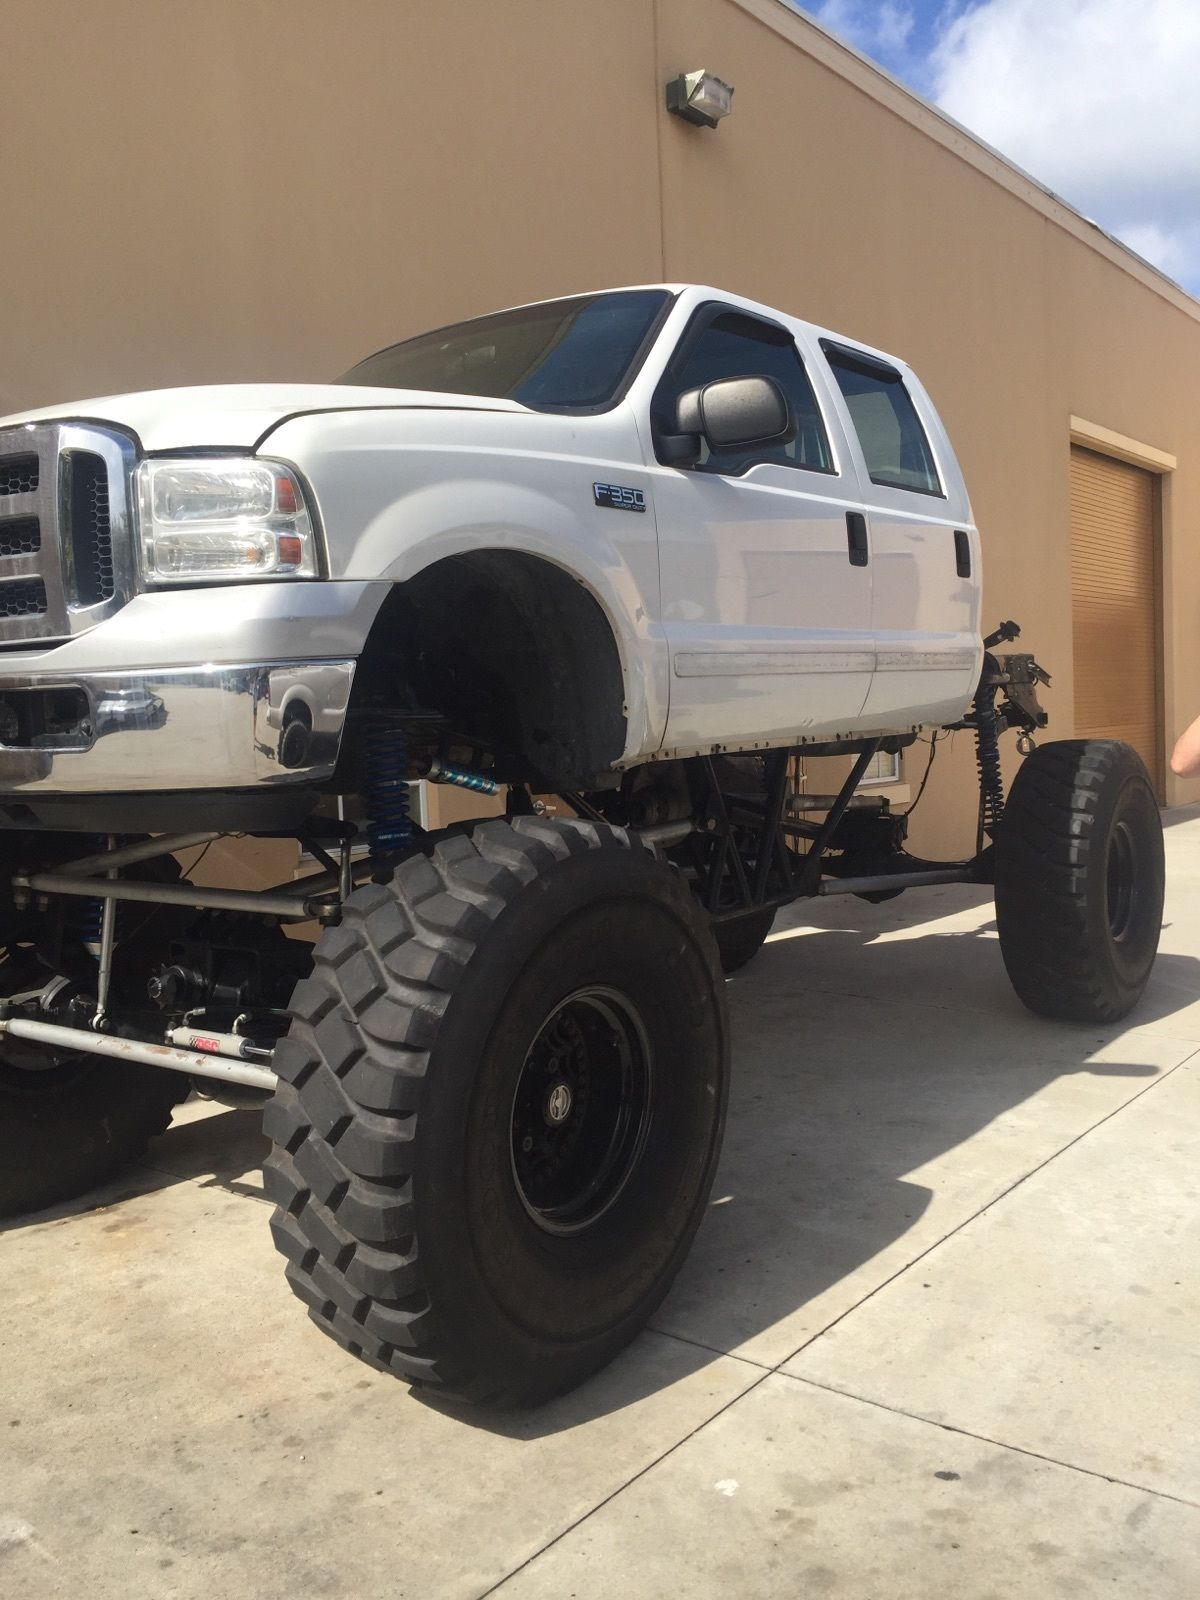 2001 Ford F-250 Lariat Monster Mud Truck for sale